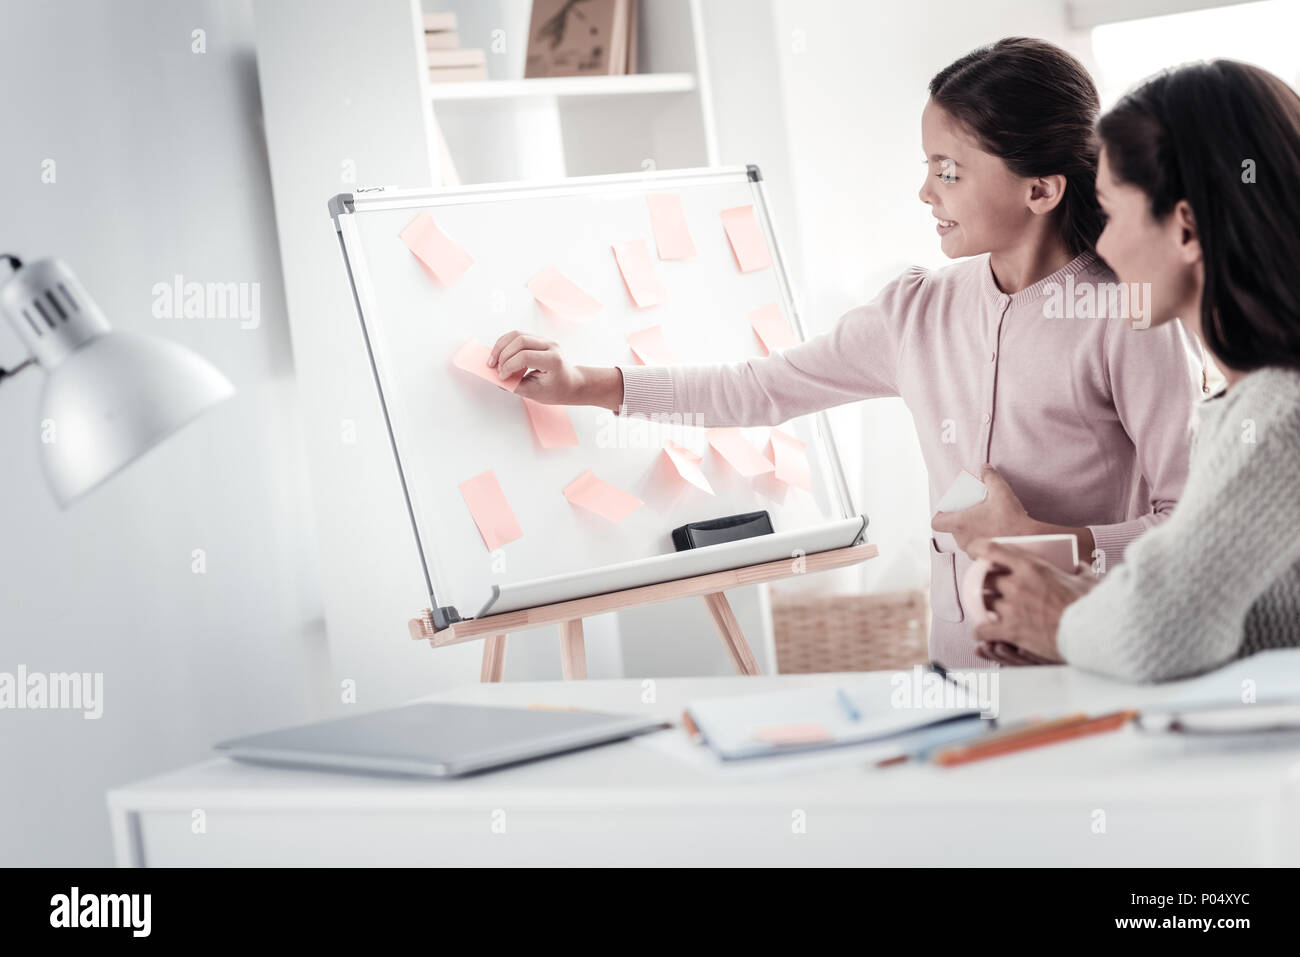 Attentive woman listening to project presentation - Stock Image